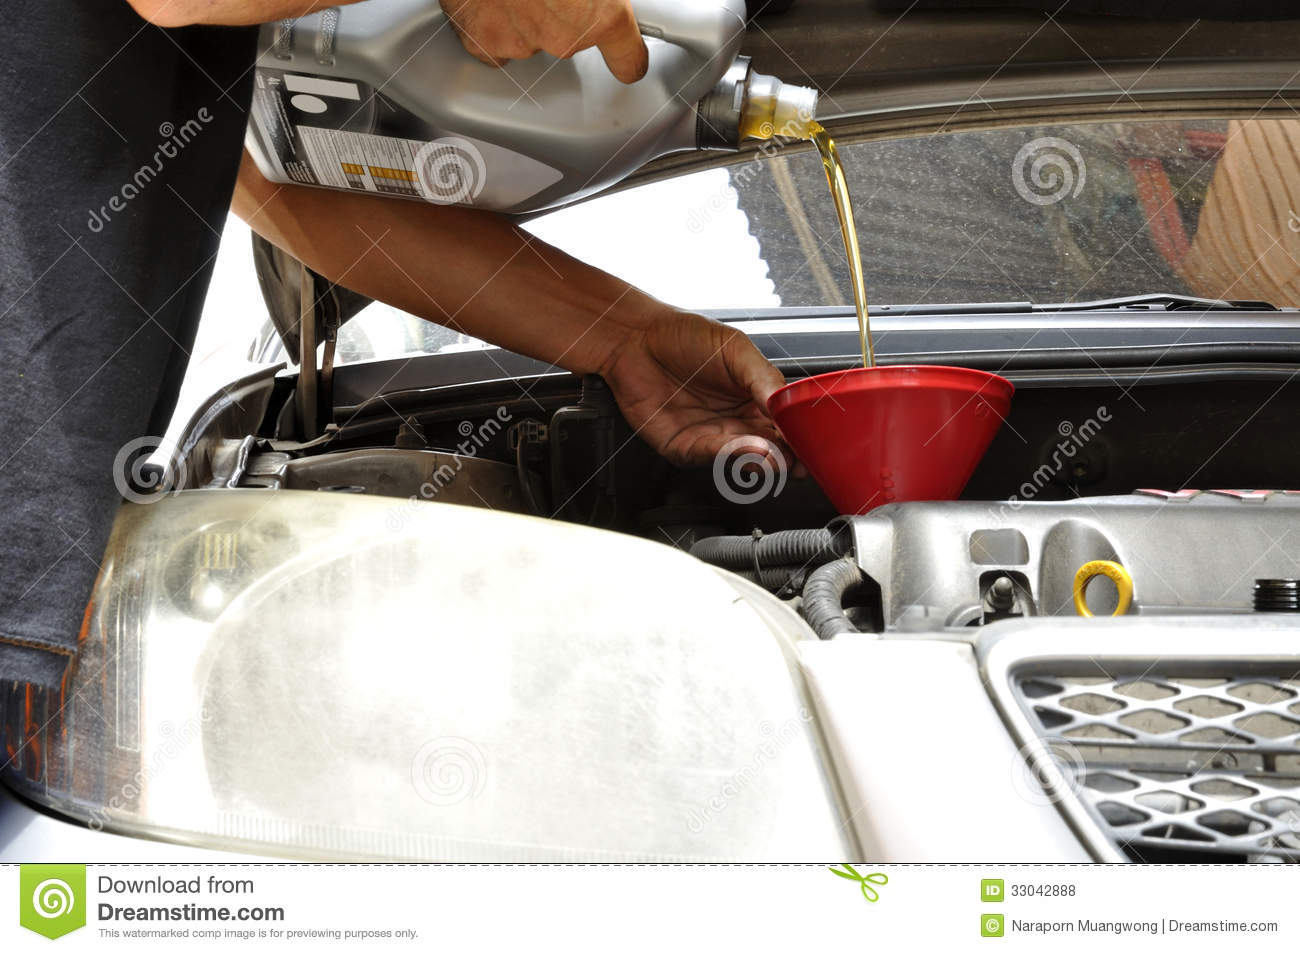 How frequently engine oil to be changed in car 10